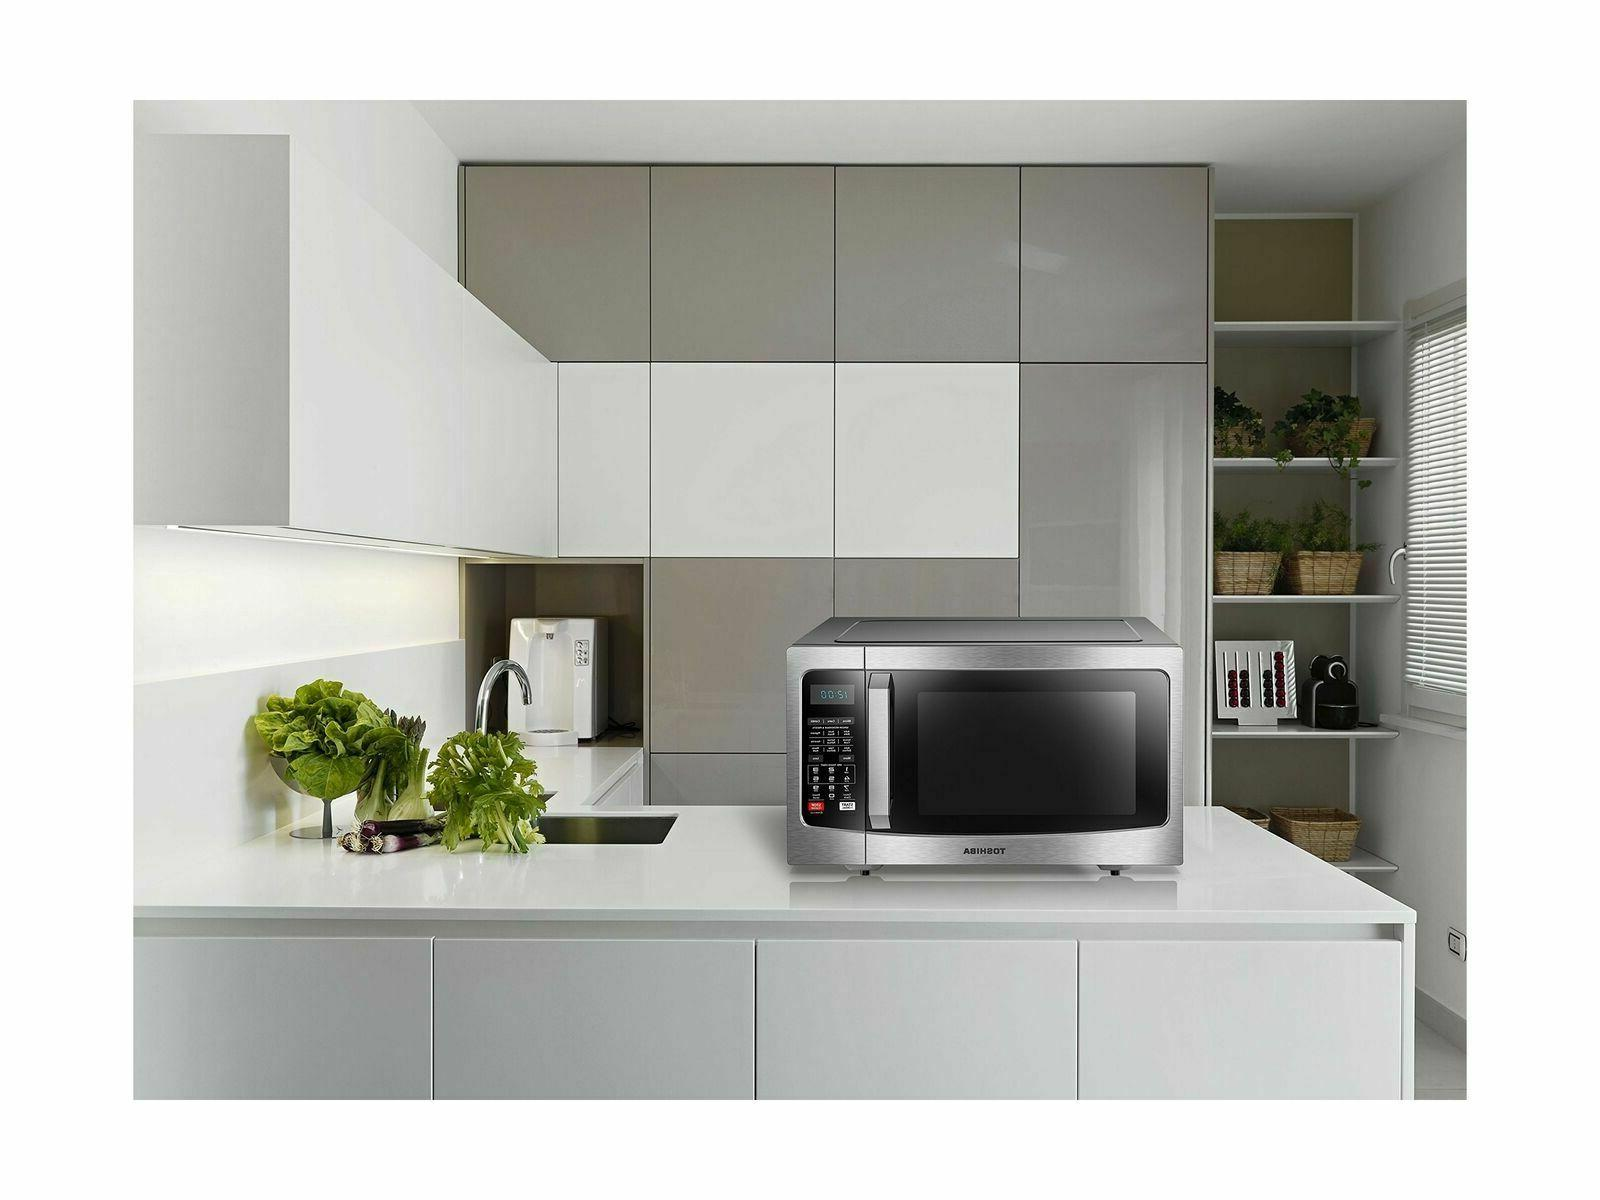 Toshiba SS Microwave Oven Convection Function